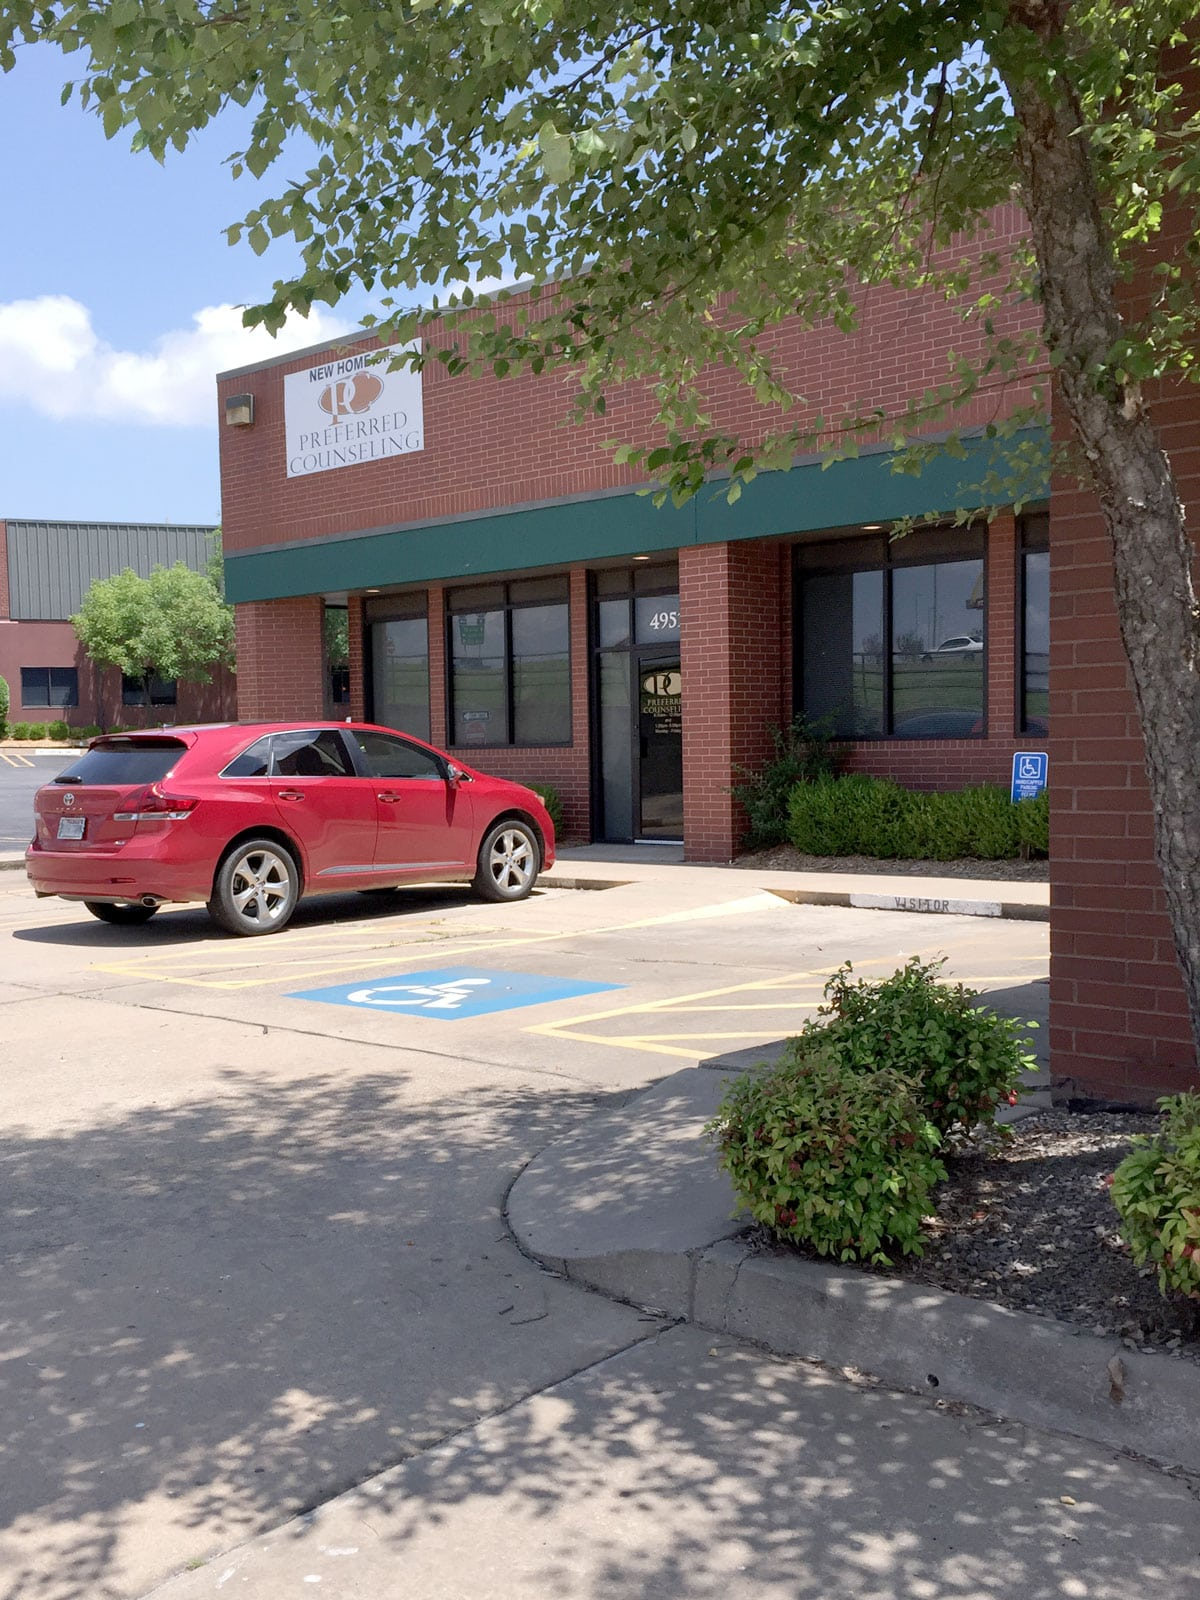 Preferred Counseling's parking area outside